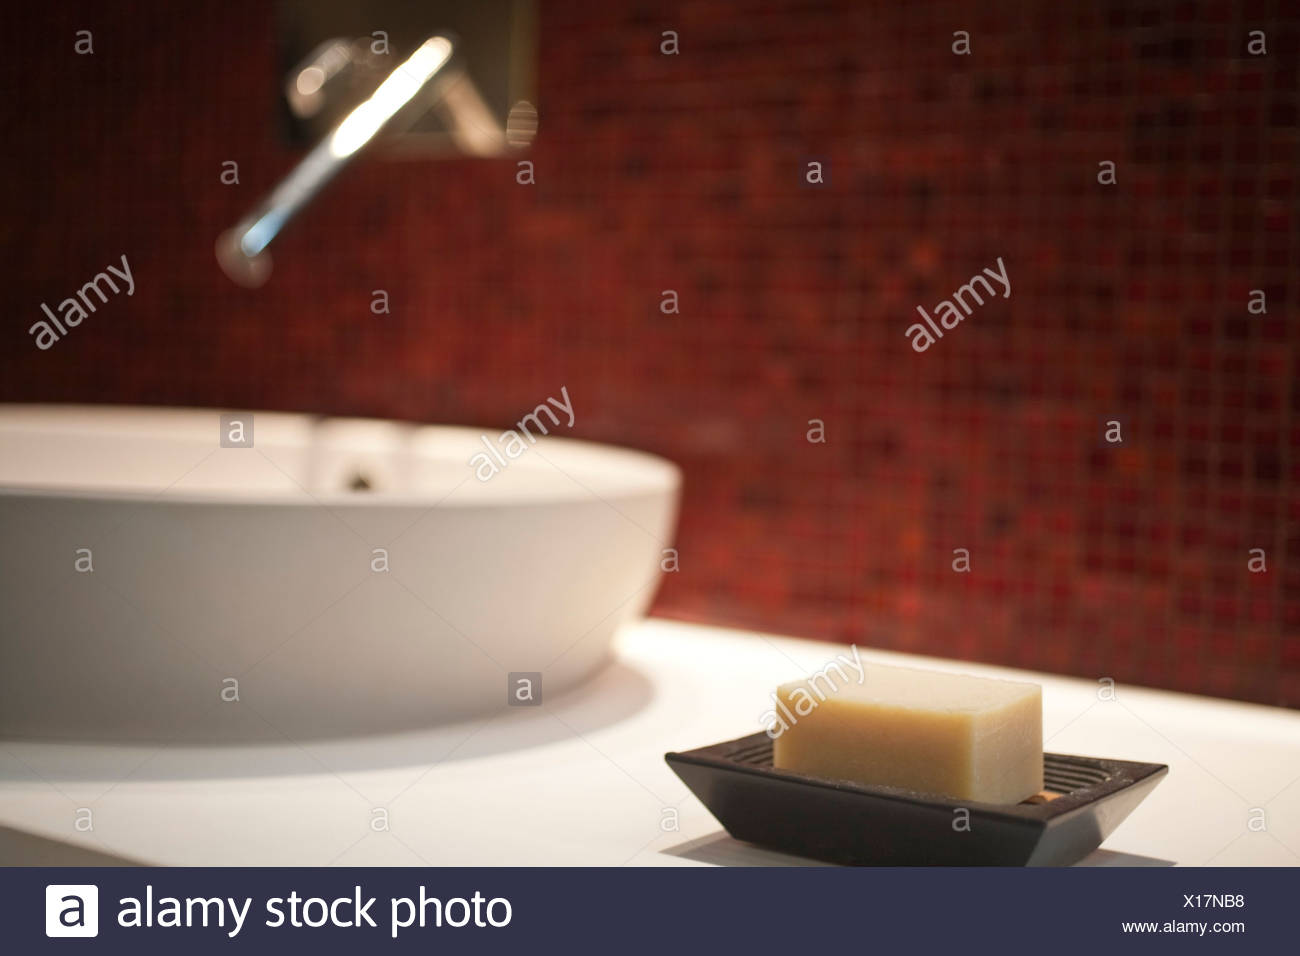 Close-up of bar of soap in soap dish - Stock Image